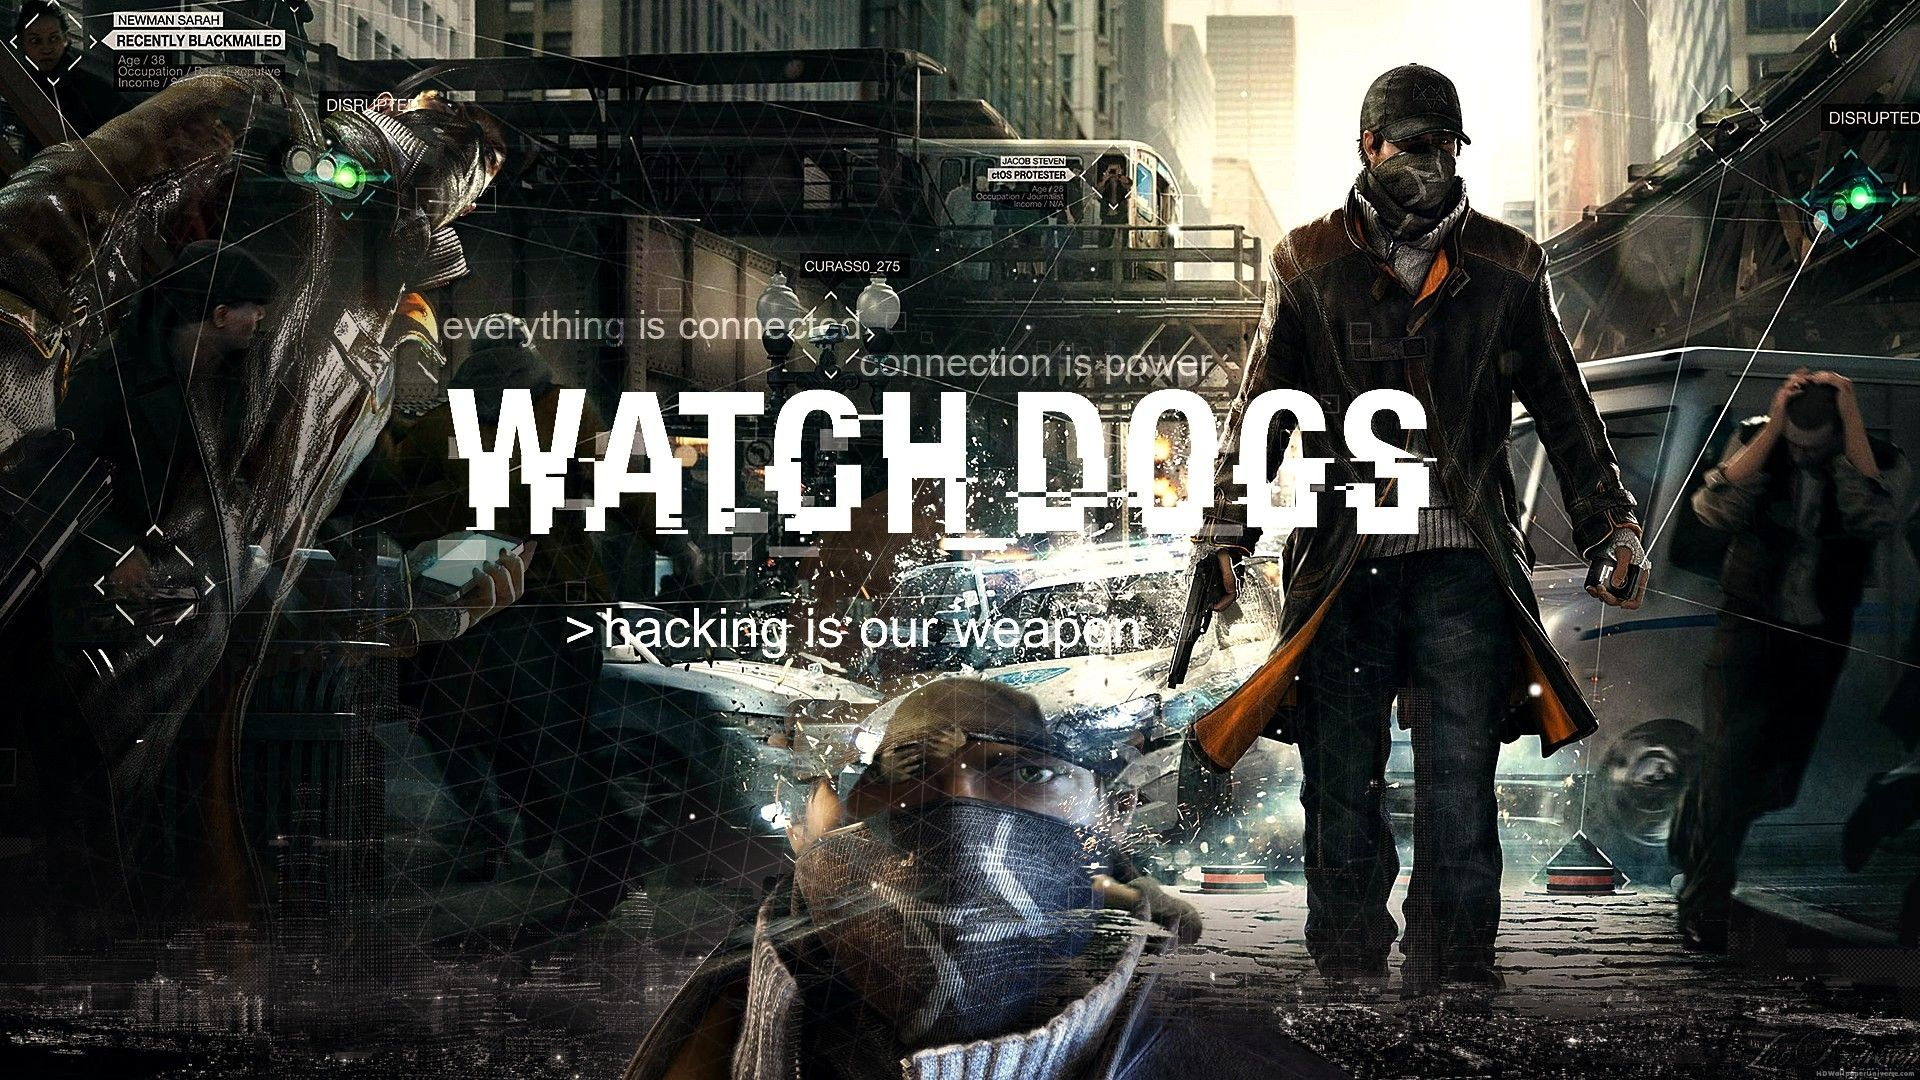 Pin By Croif On Hd Desktop Wallpapers Dog Hacks Dogs Games